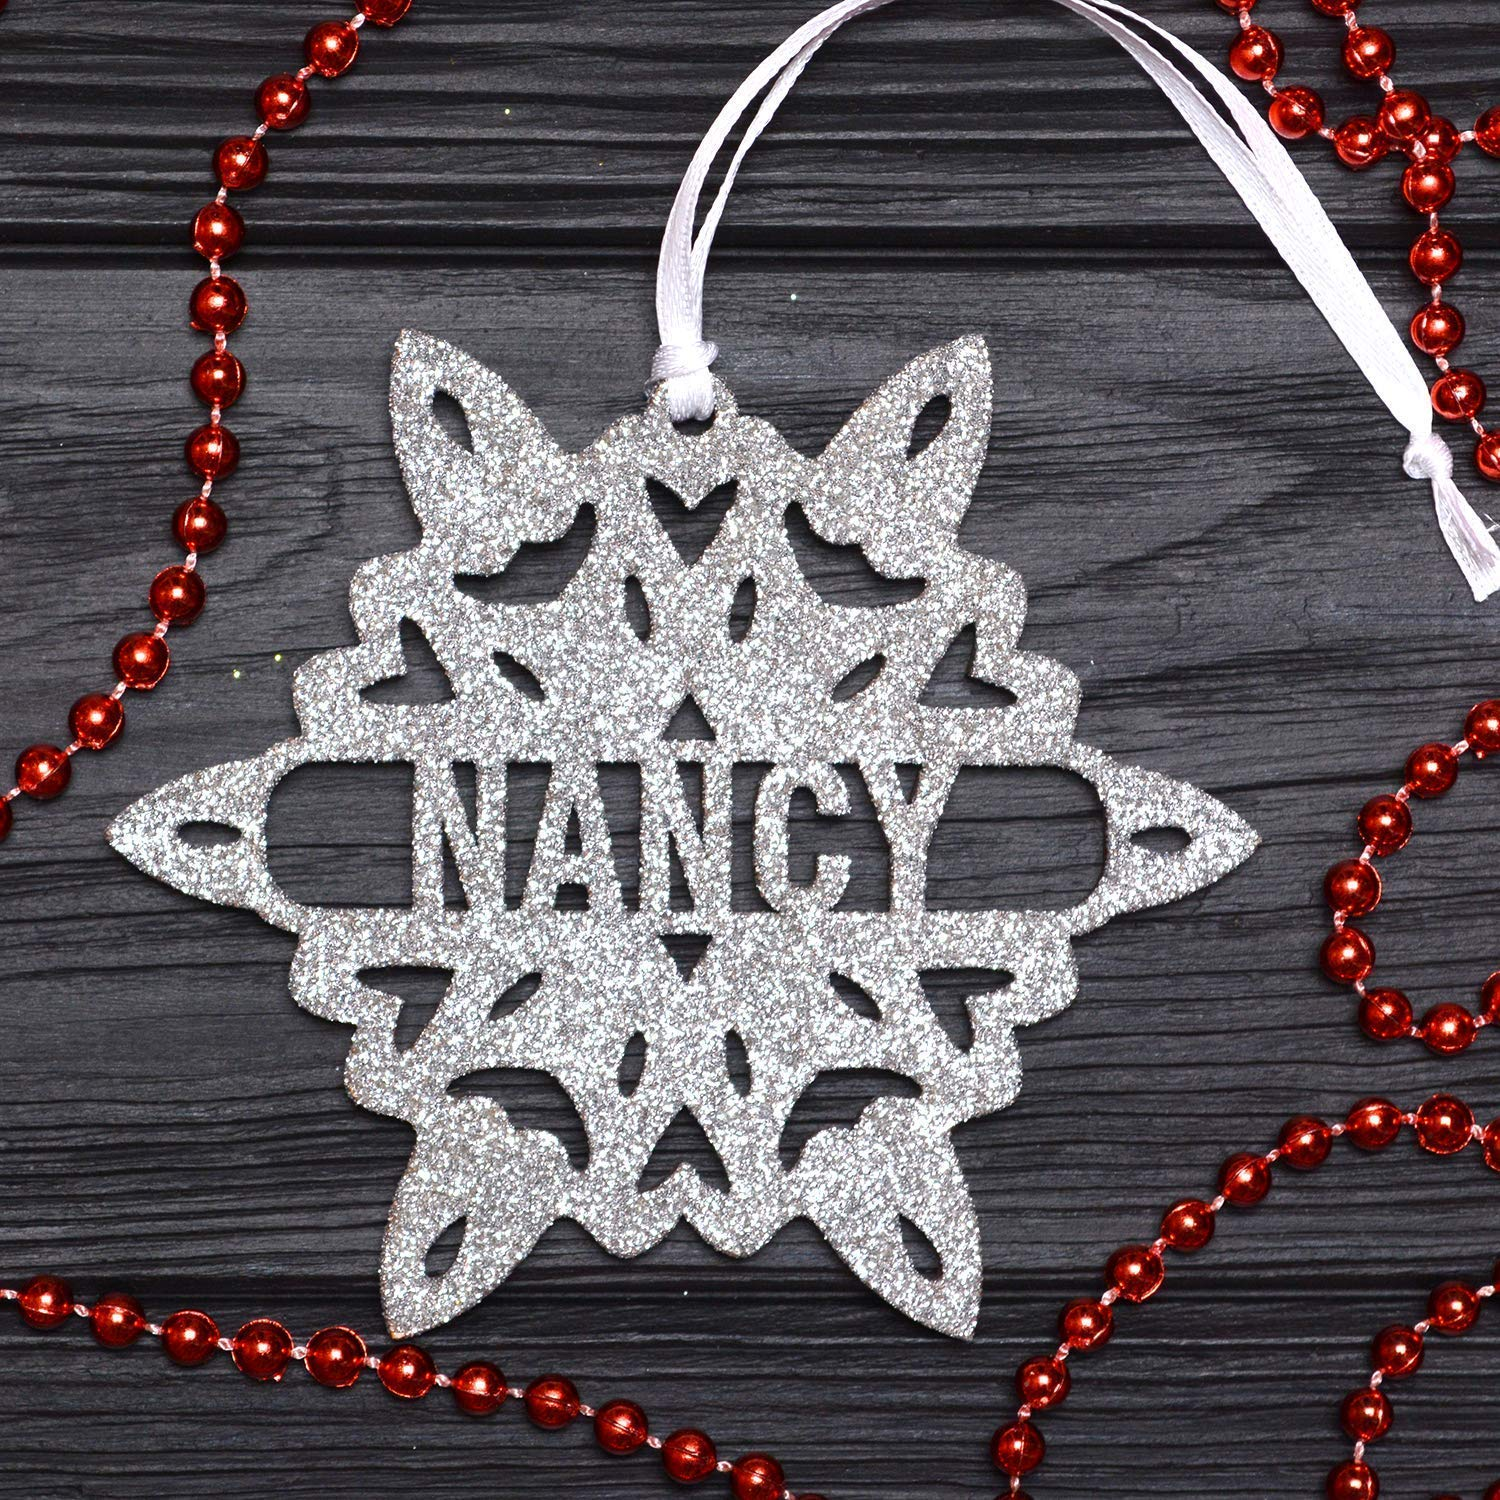 Personalized Christmas Snowflake/Silver Glitter Snowflake, Wooden Snowflake Ornament, Christmas Decorations, Holiday Decor, Xmas Gifts